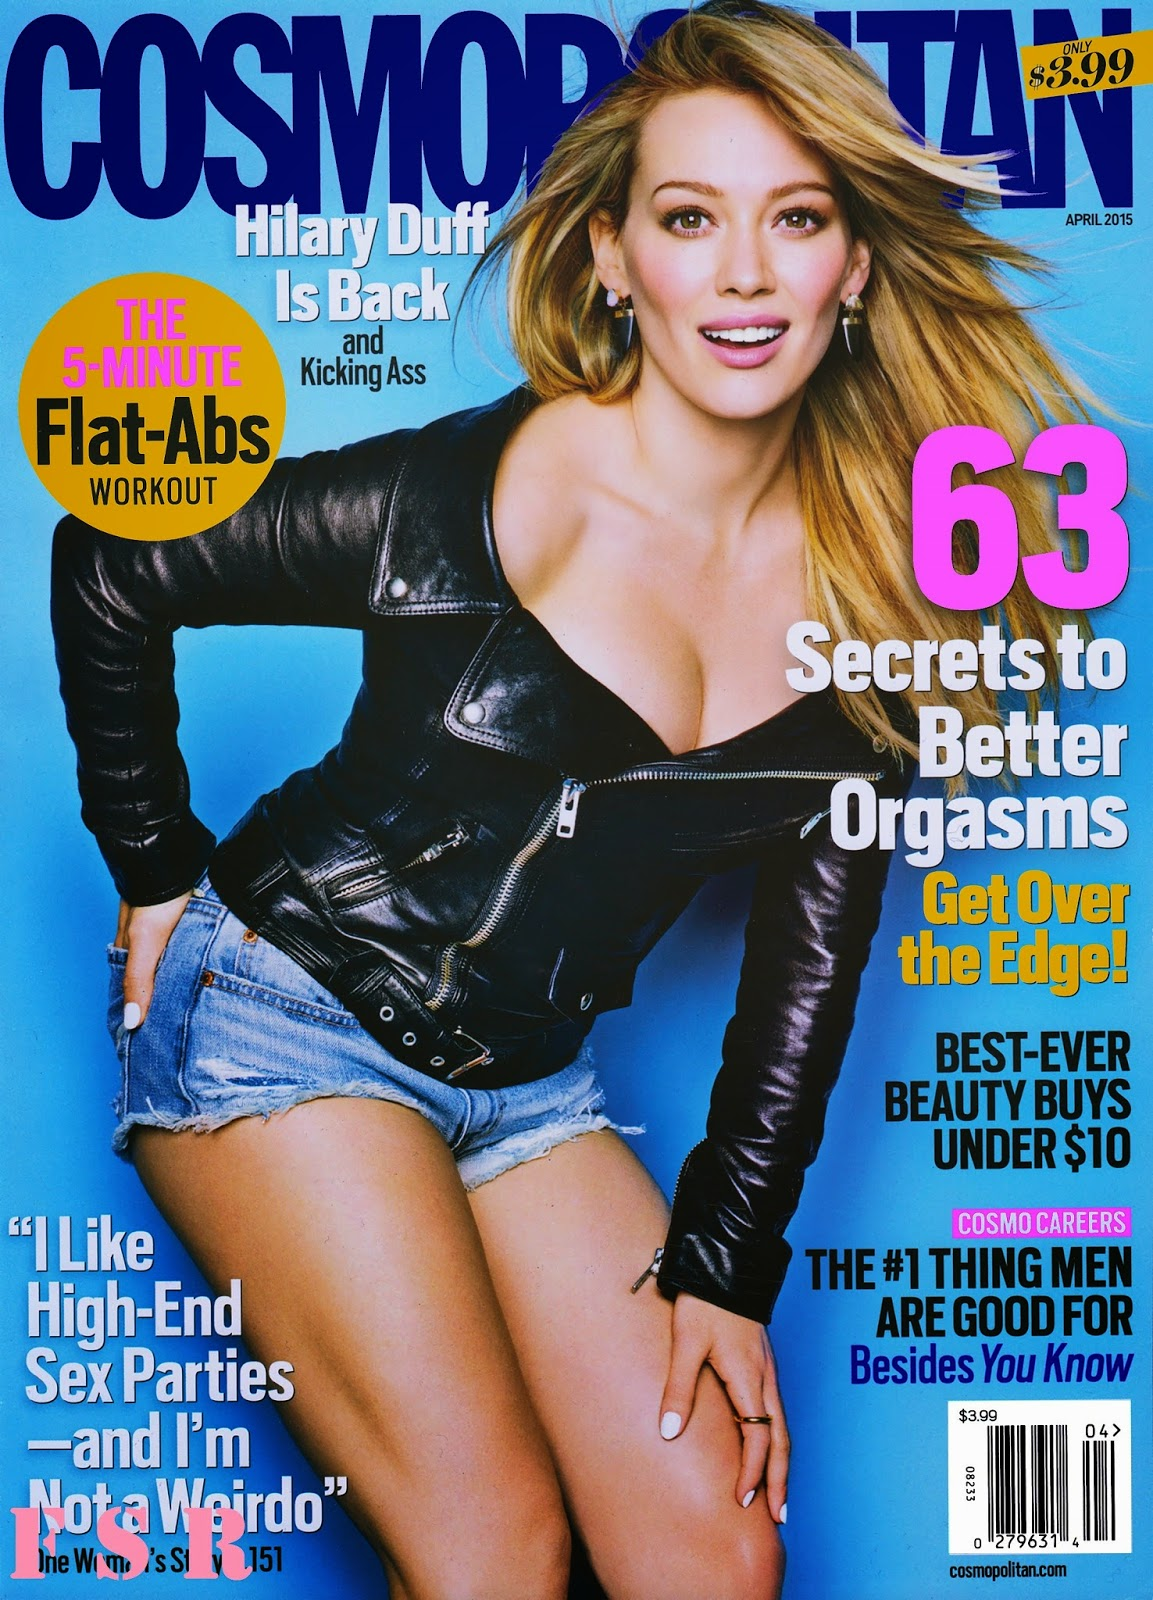 Singer, Actress @ Hilary Duff - Cosmopolitan USA, April 2015